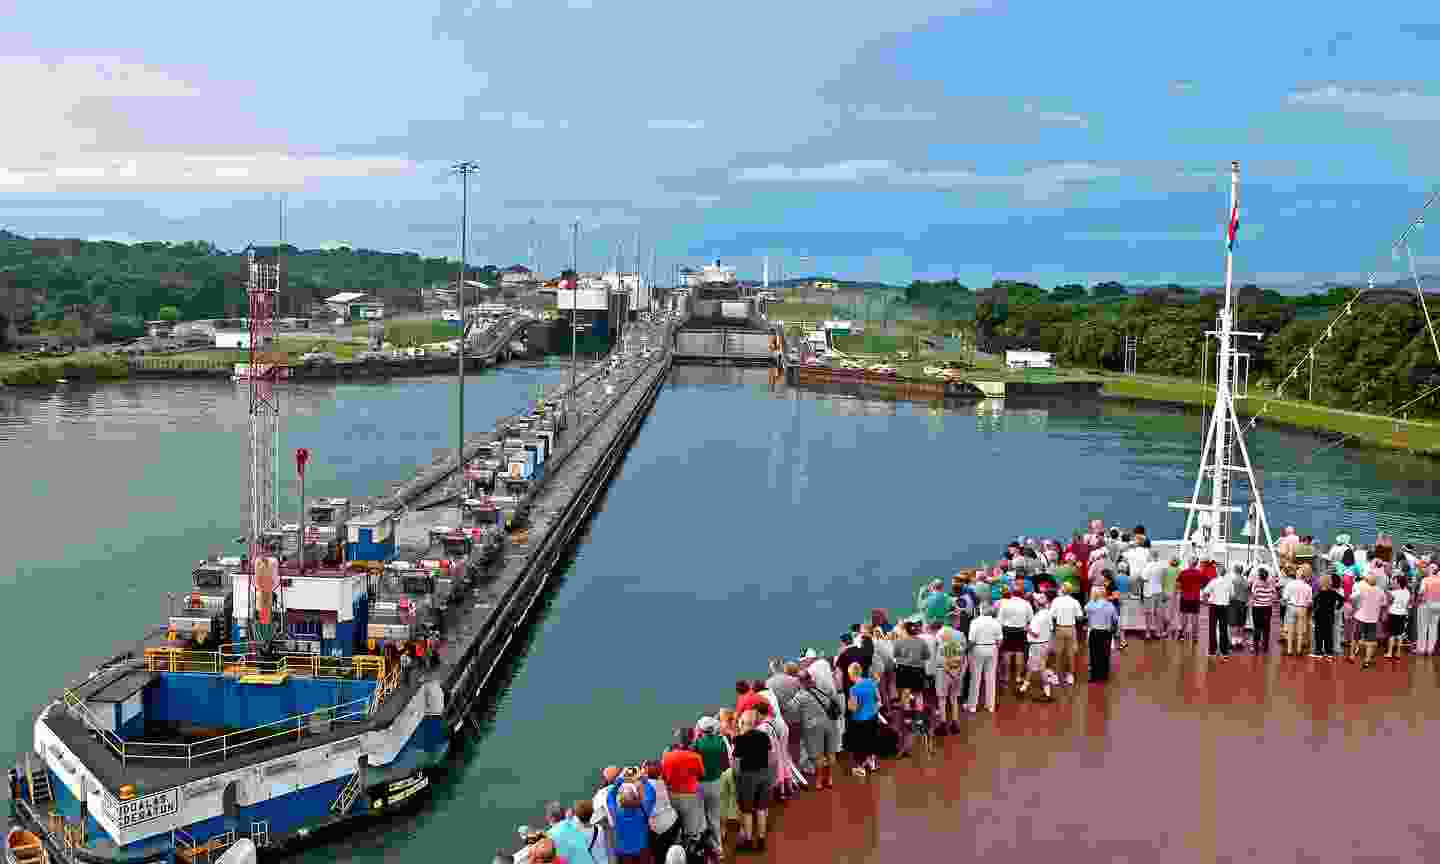 Tourists stand on bow of a cruise ship as it enters first lock of Panama Canal (Shutterstock)